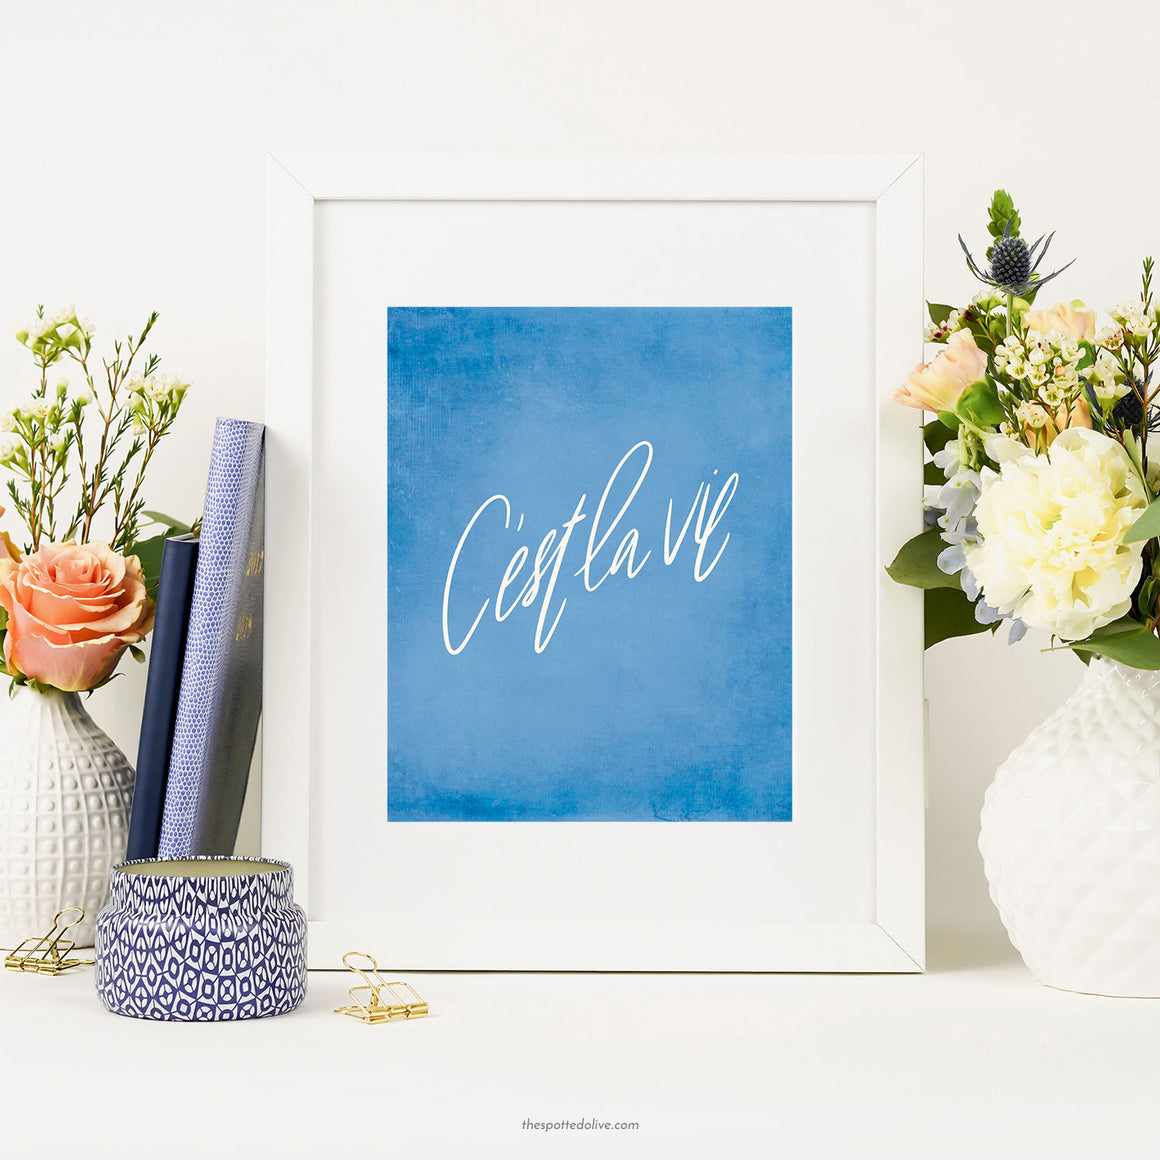 Hand Lettered C'est La Vie Printable Art by The Spotted Olive - Scene